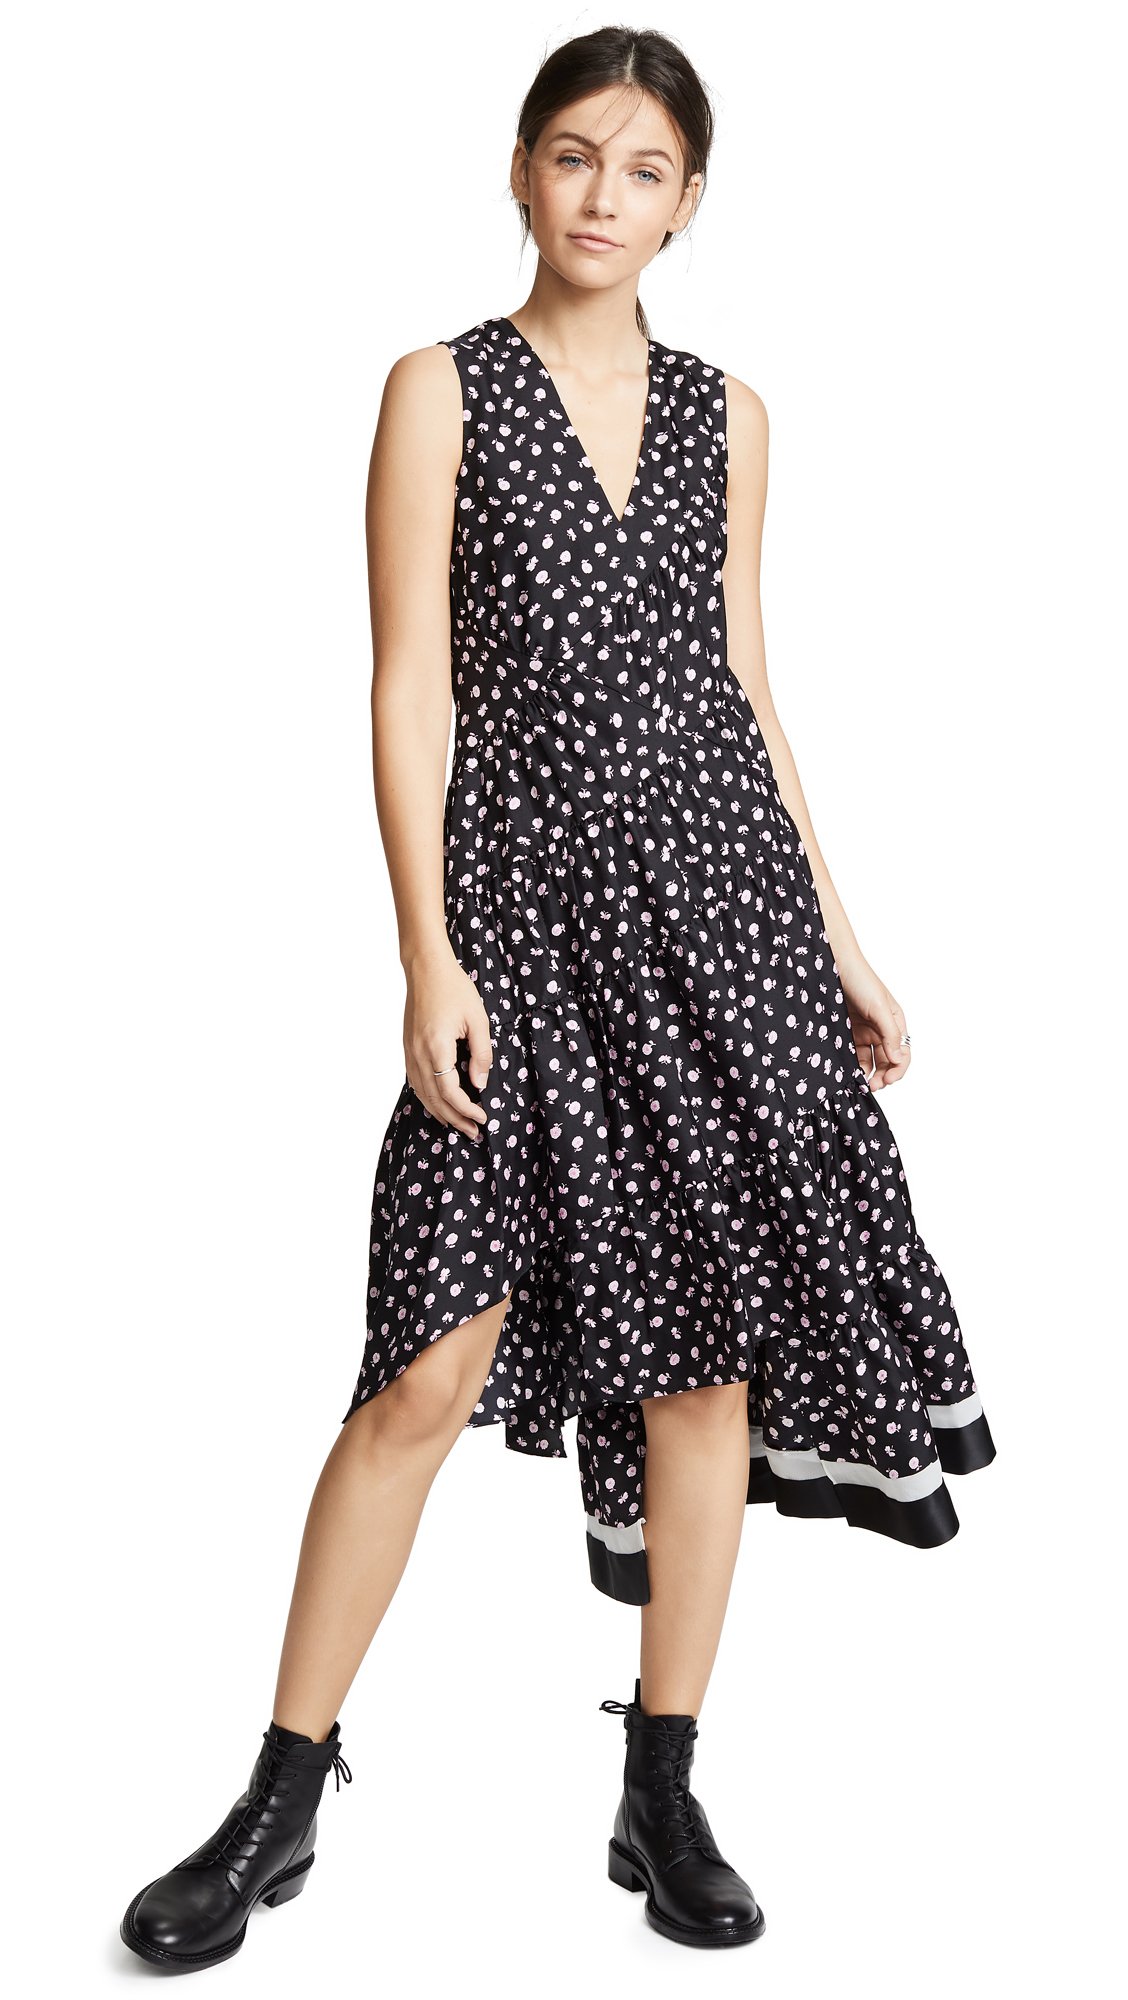 3.1 Phillip Lim Daisy Gathered Dress - Black/Pink